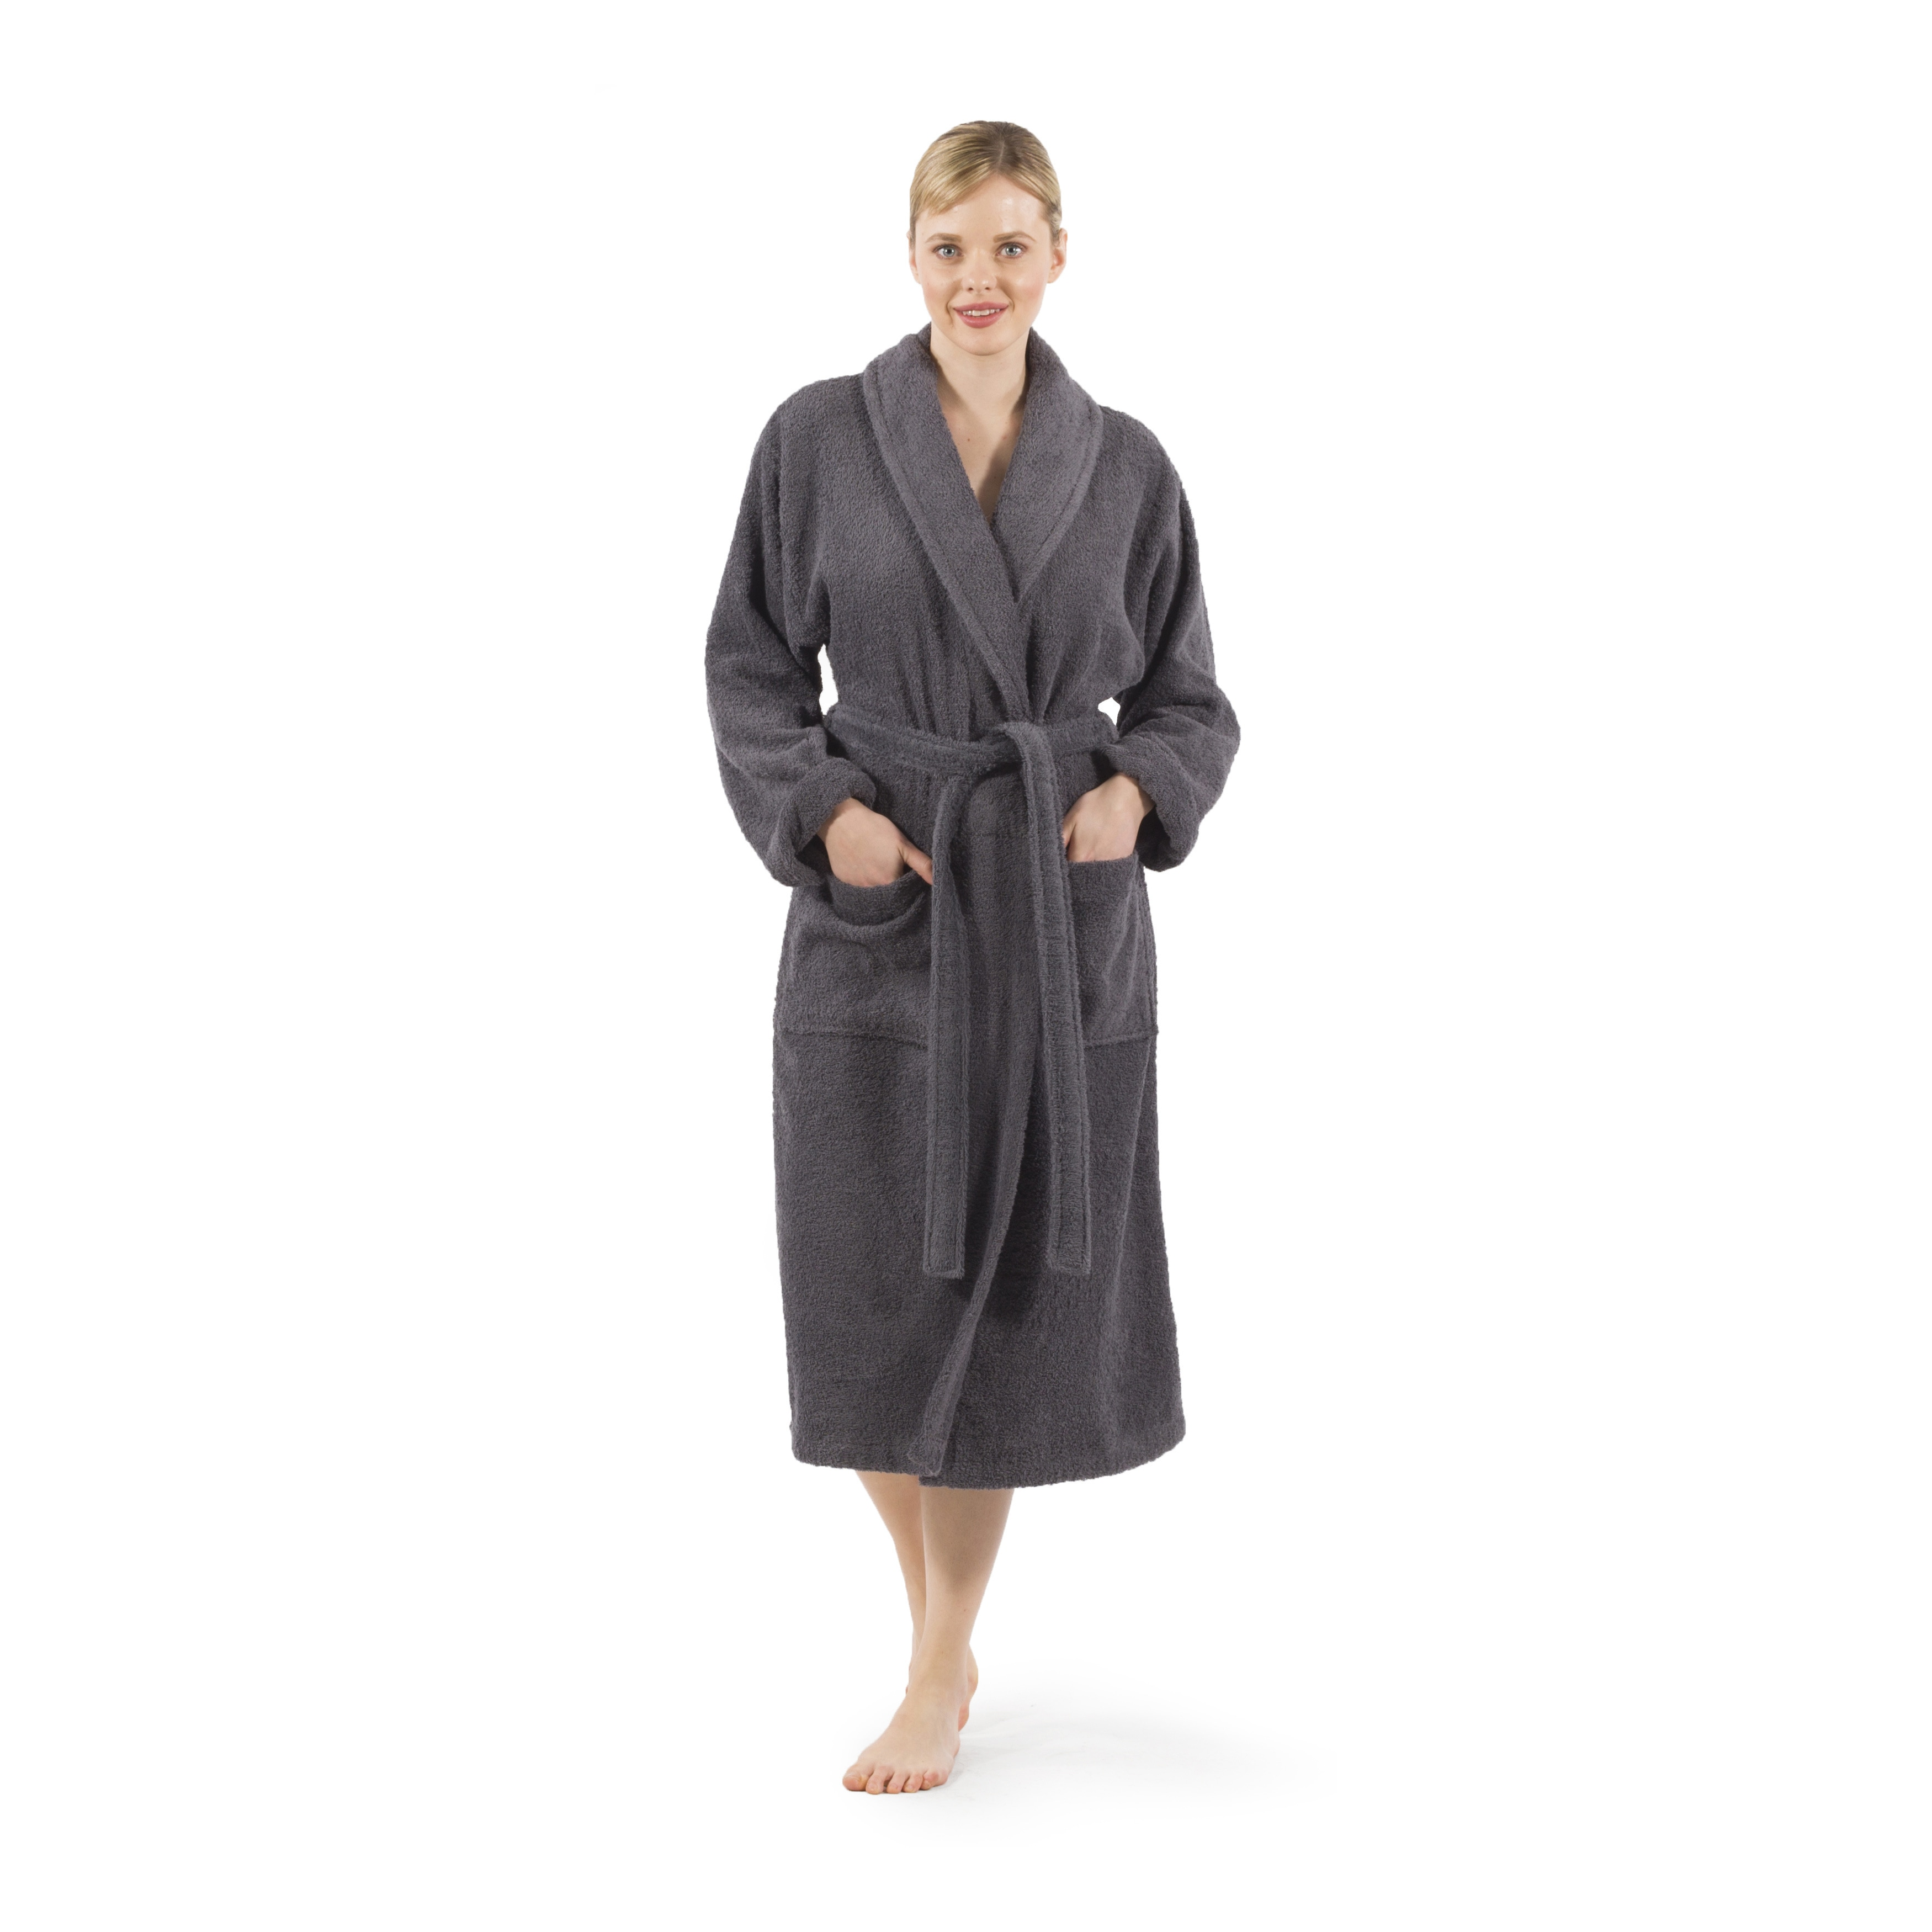 9fdea74d32 Shop Authentic Hotel Spa Unisex Turkish Cotton Terry Cloth Bath Robe - On  Sale - Free Shipping Today - Overstock - 4757191